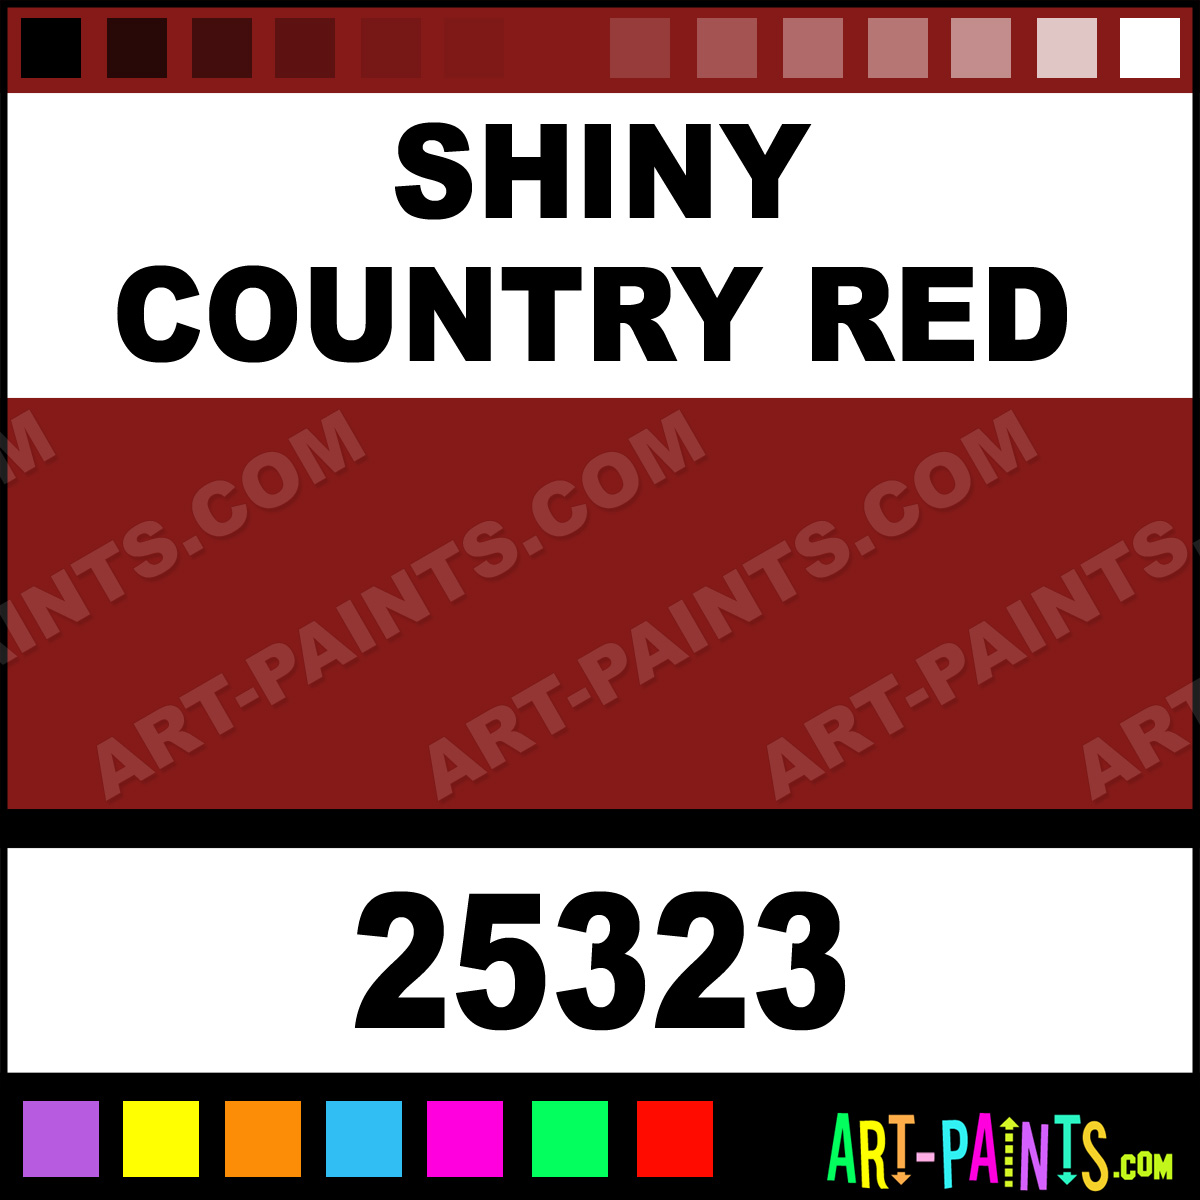 Shiny Country Red Fashion Dimensional Fabric Textile